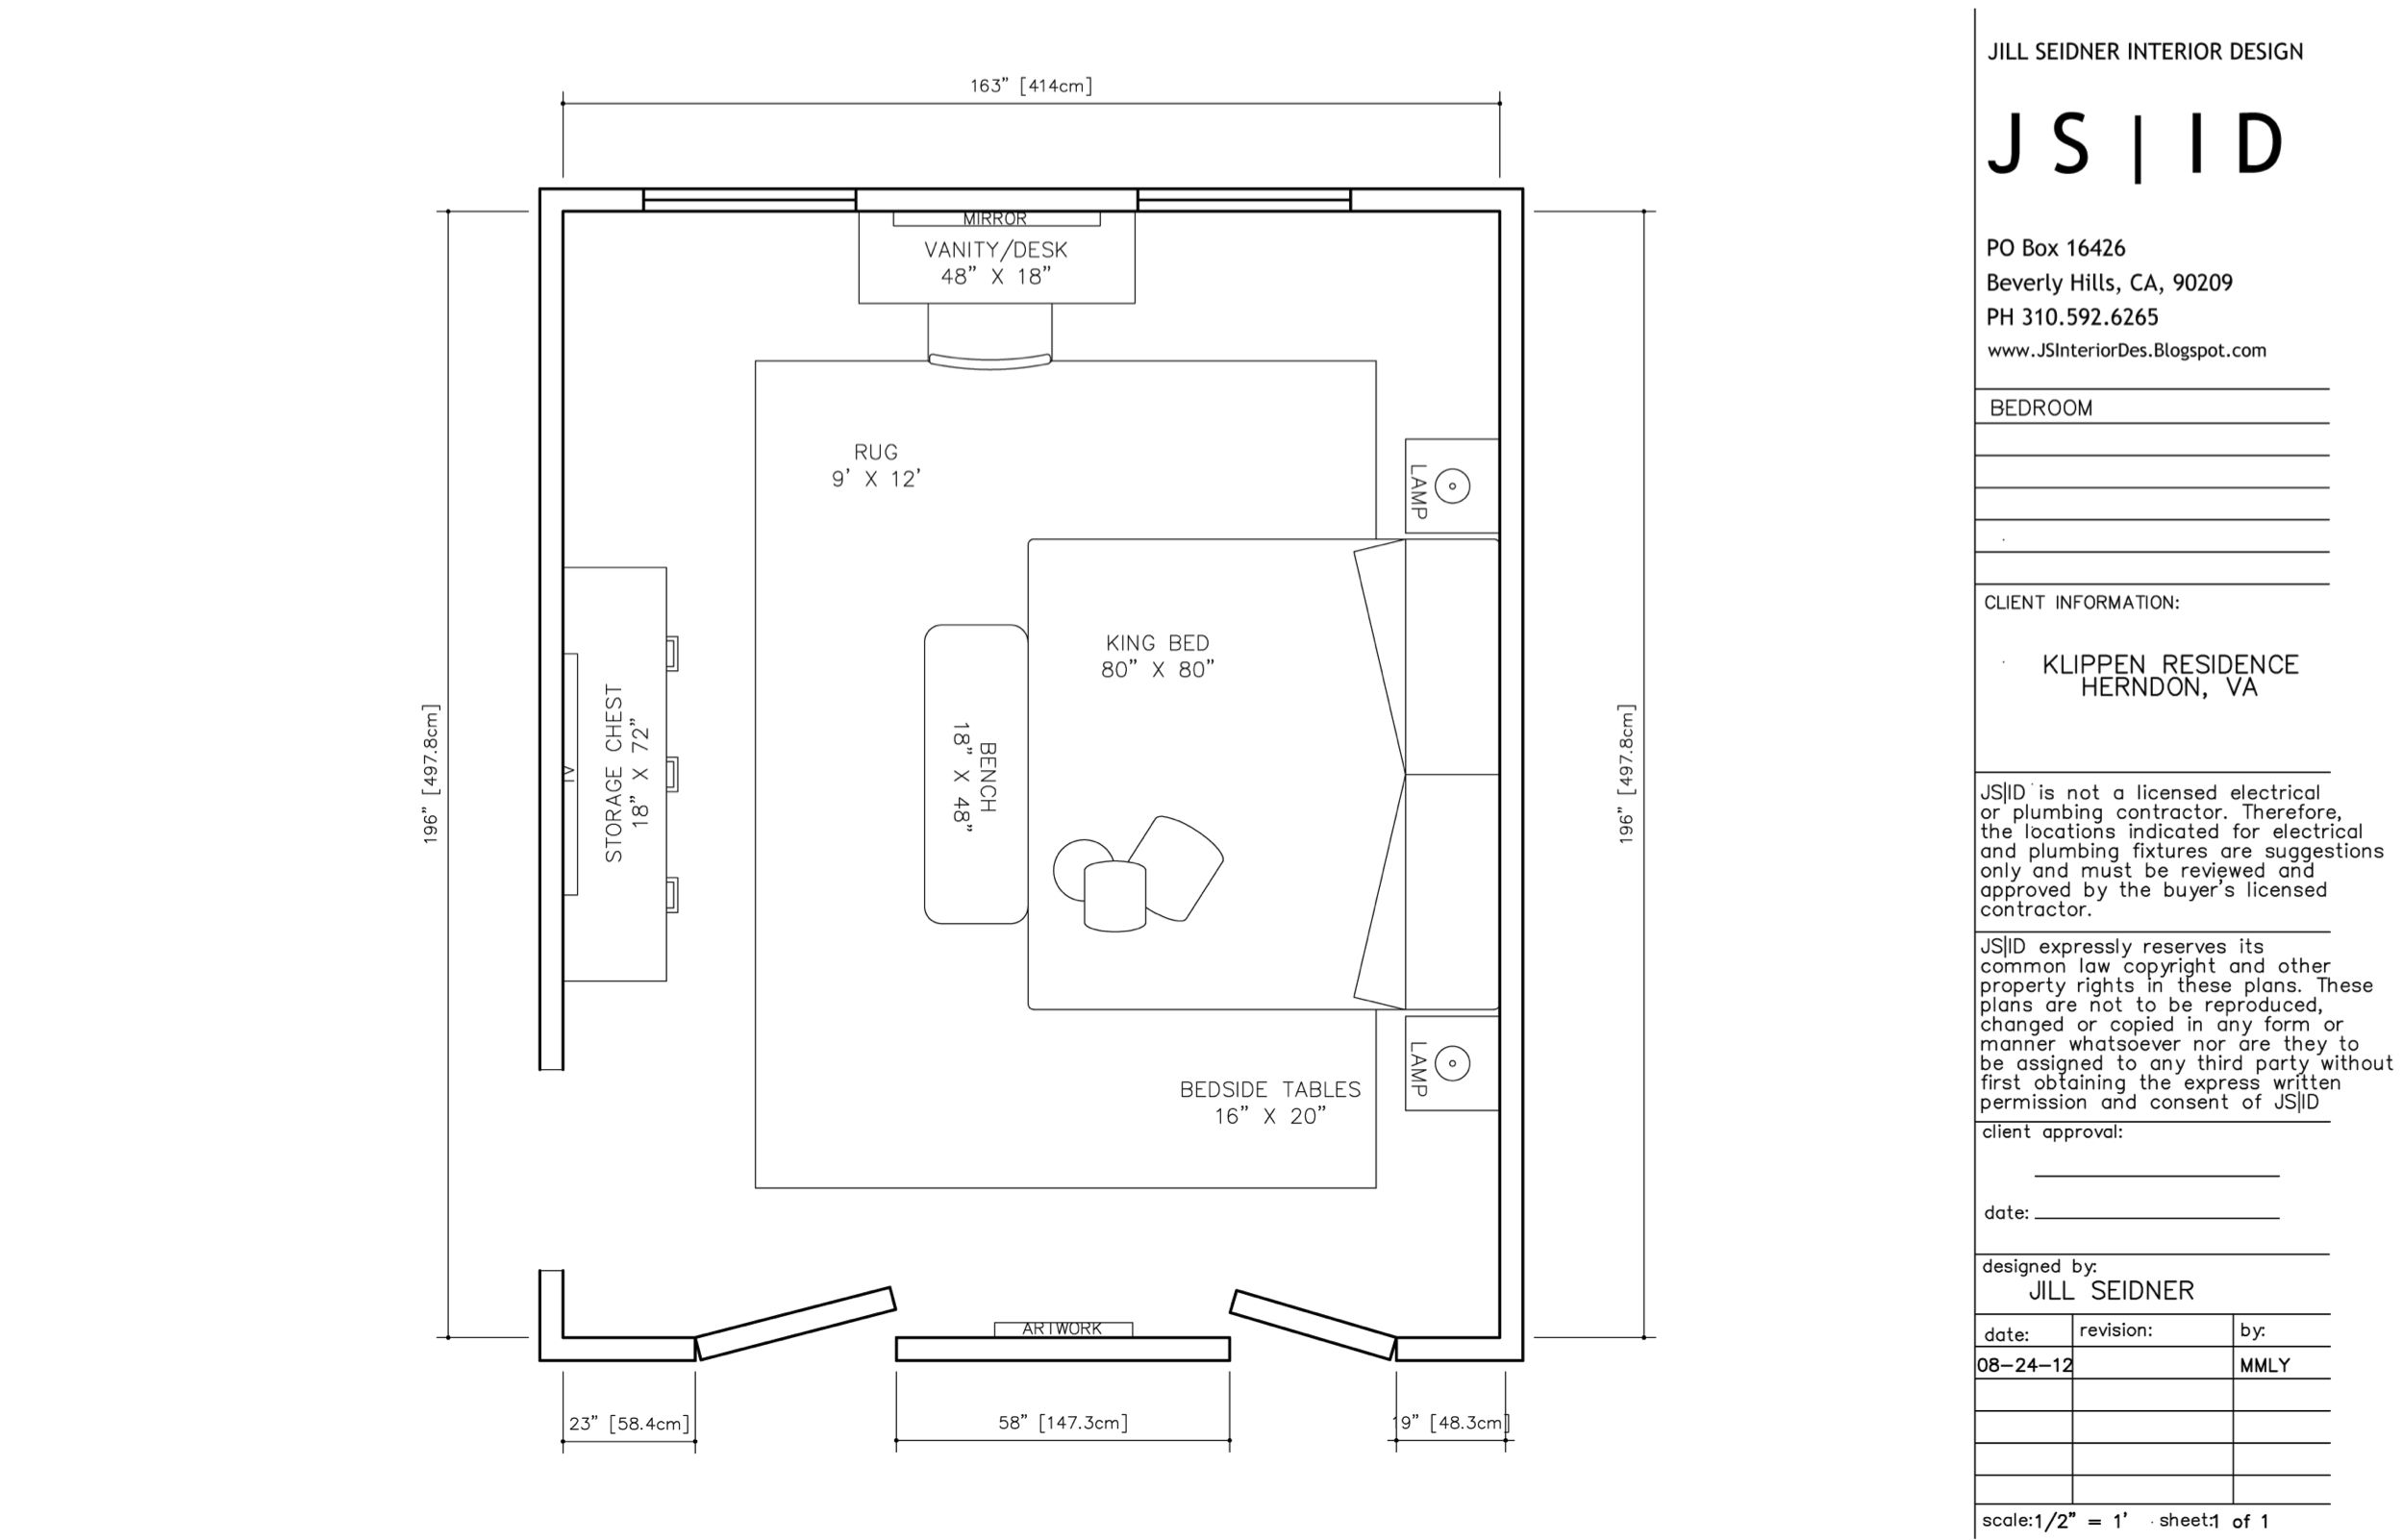 Herndon, Va Online Design Project, Master Bedroom Furniture Floor Plan